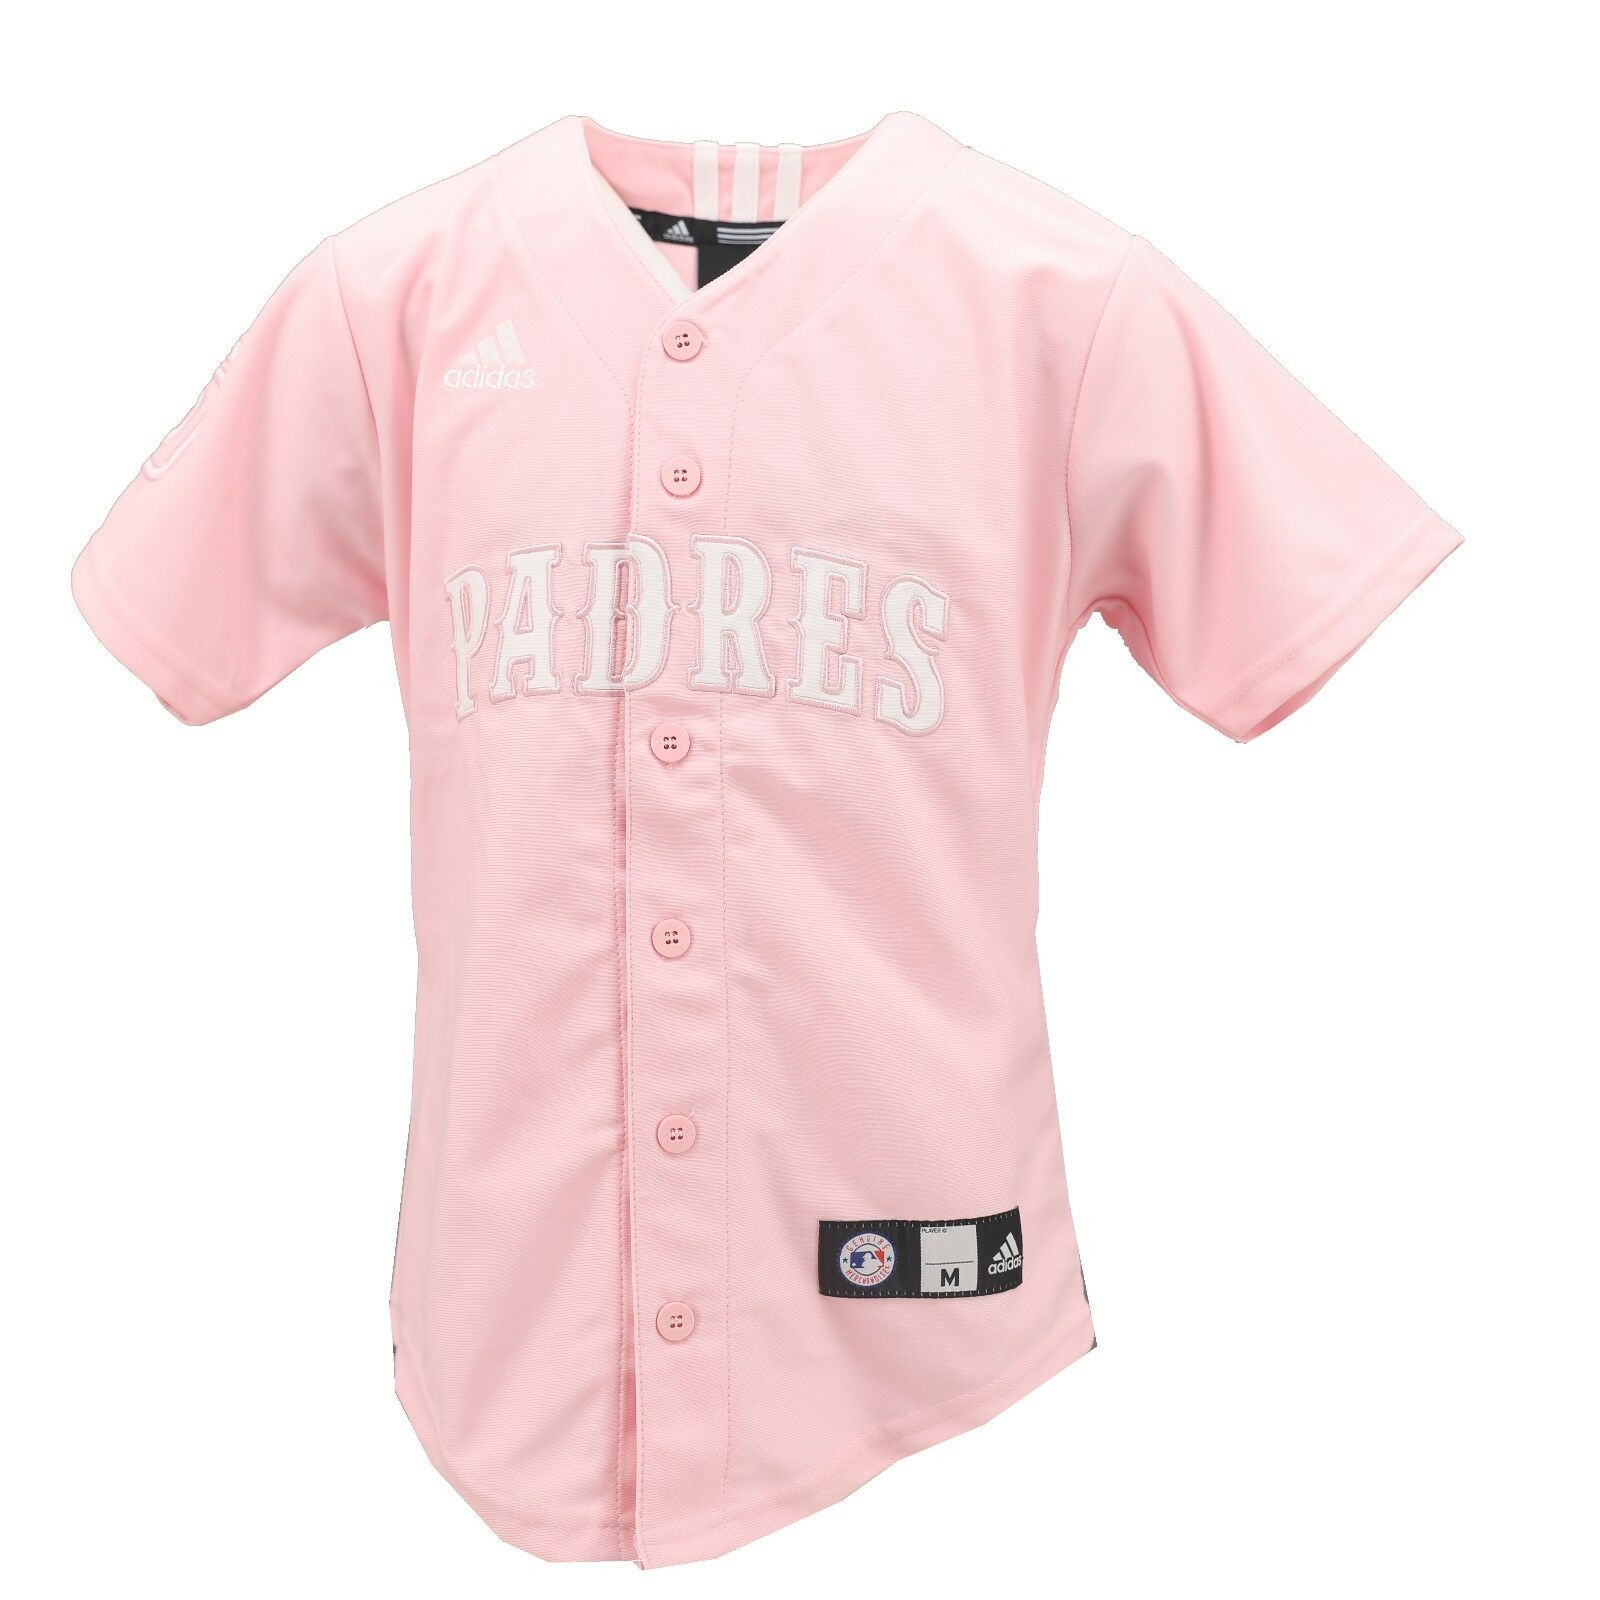 the best attitude fad6d 90bcd Details about San Diego Padres Official MLB Adidas Kids Youth Girls Size  Pink Jersey New Tags